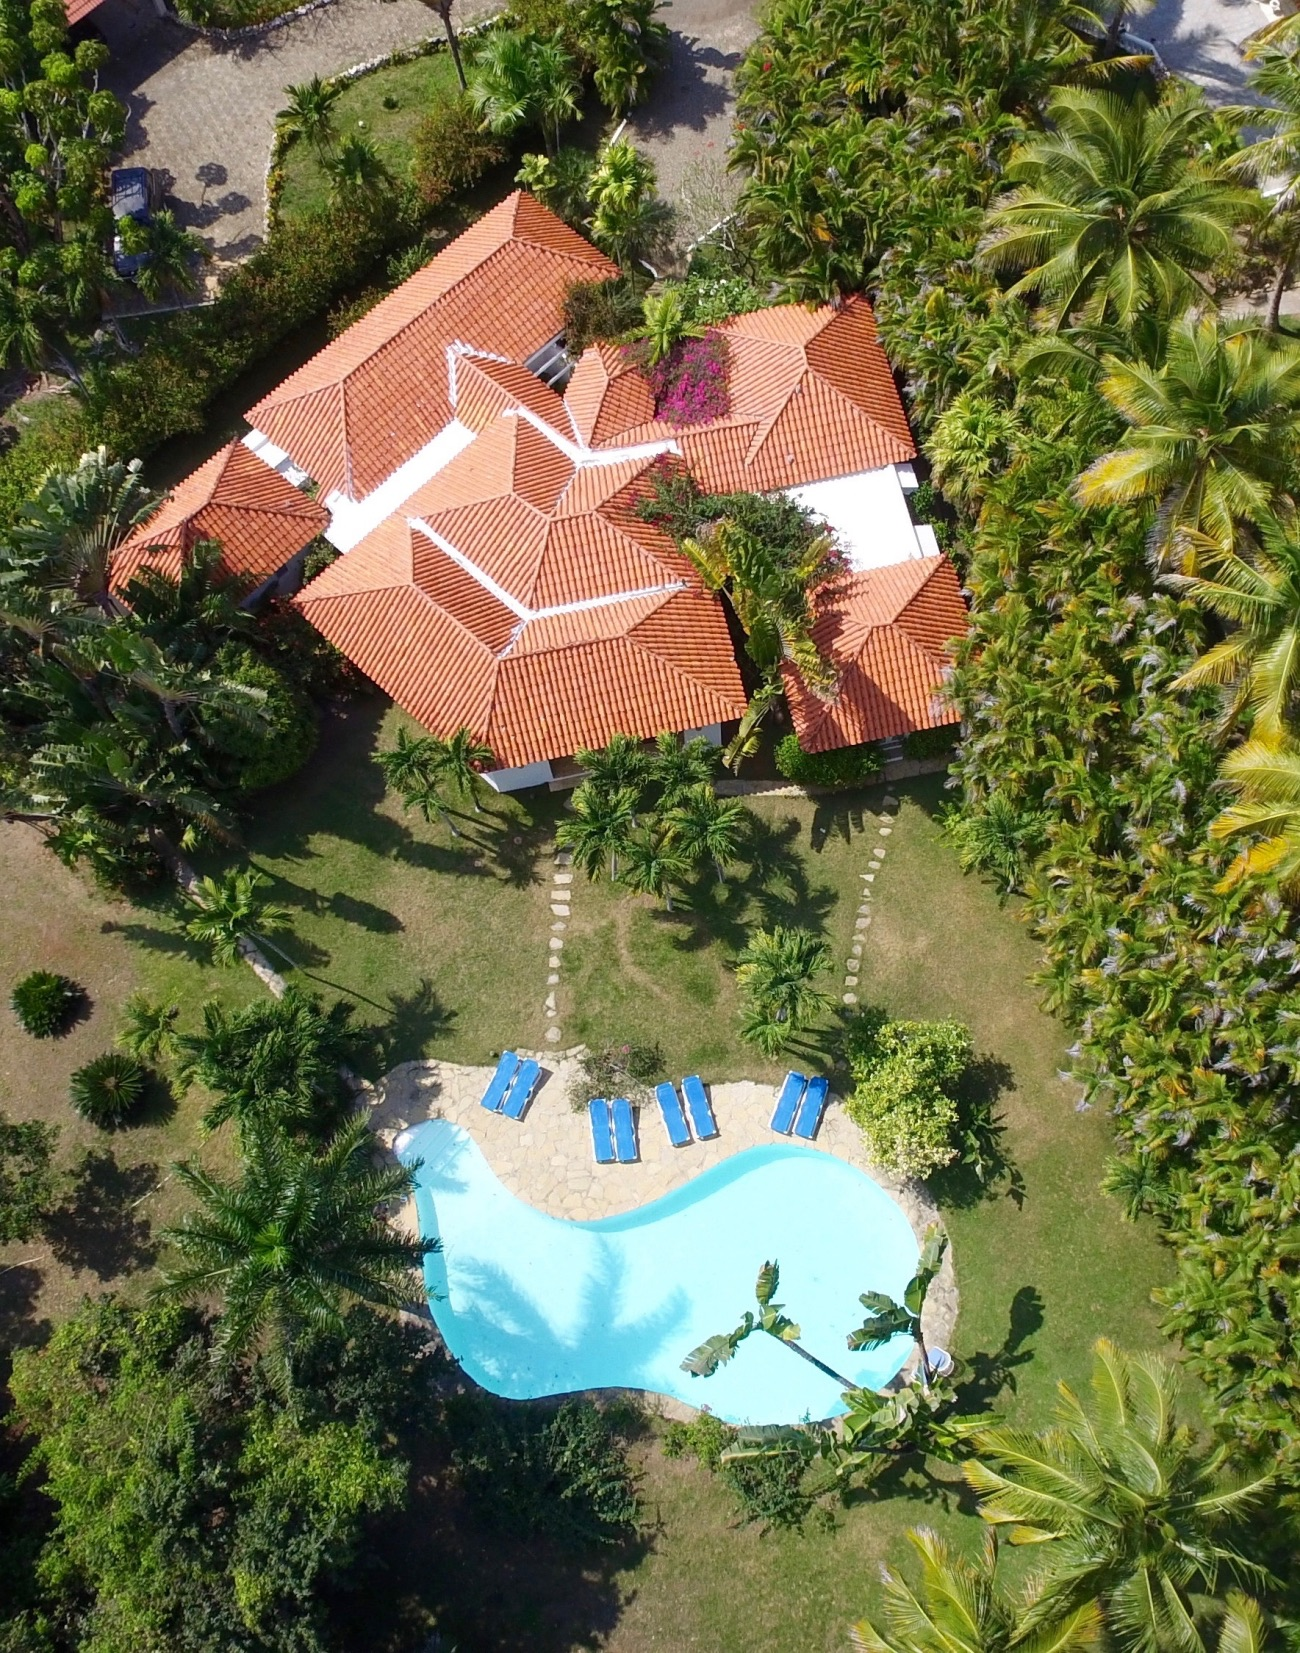 5 Bedroom Beach Access Villa Rental in Cabarete